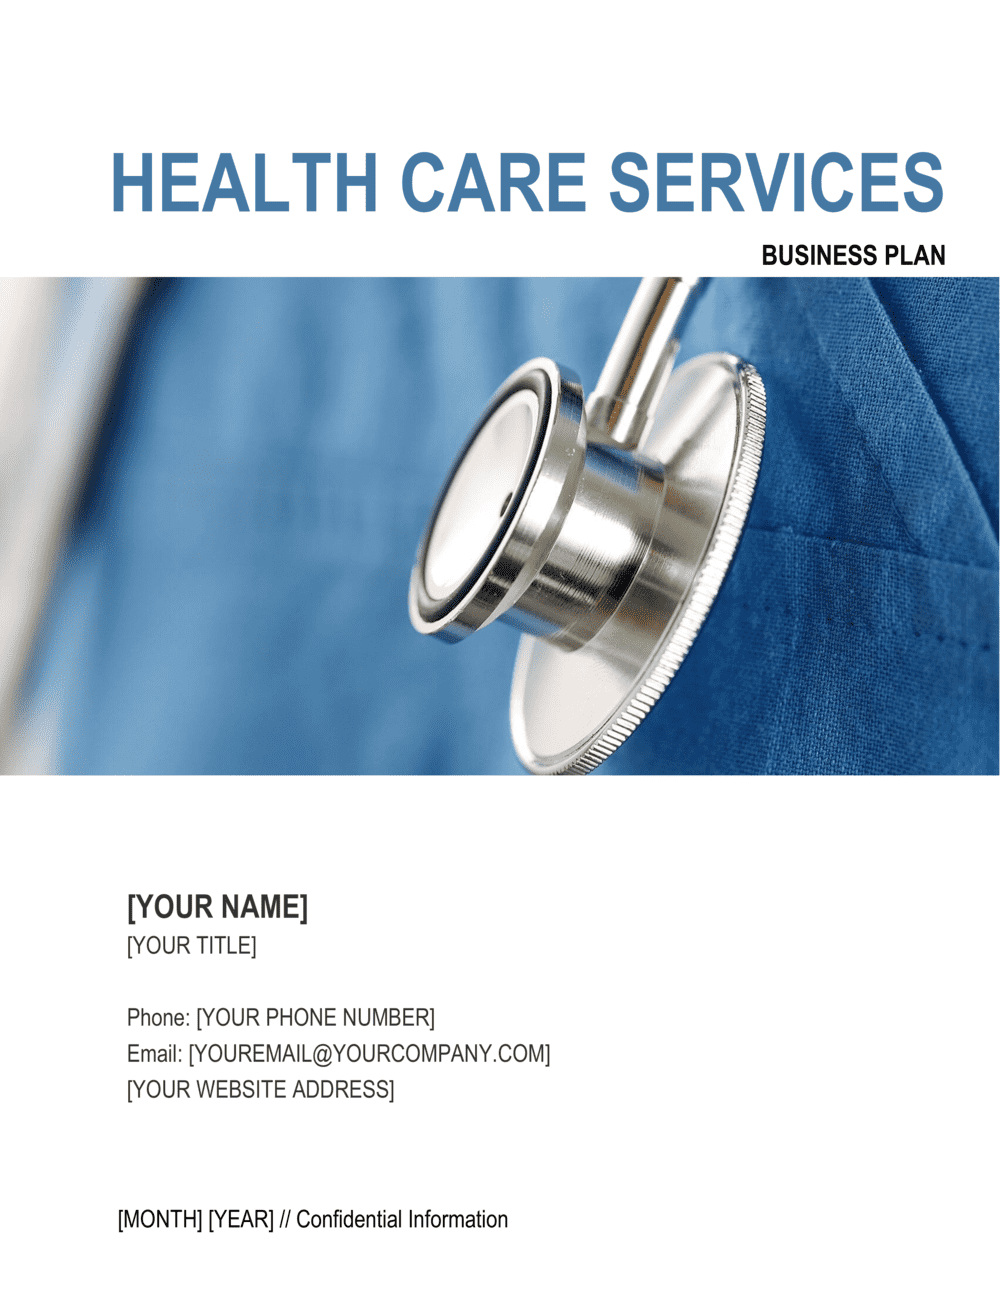 Business-in-a-Box's Health Care Services Business Plan Template